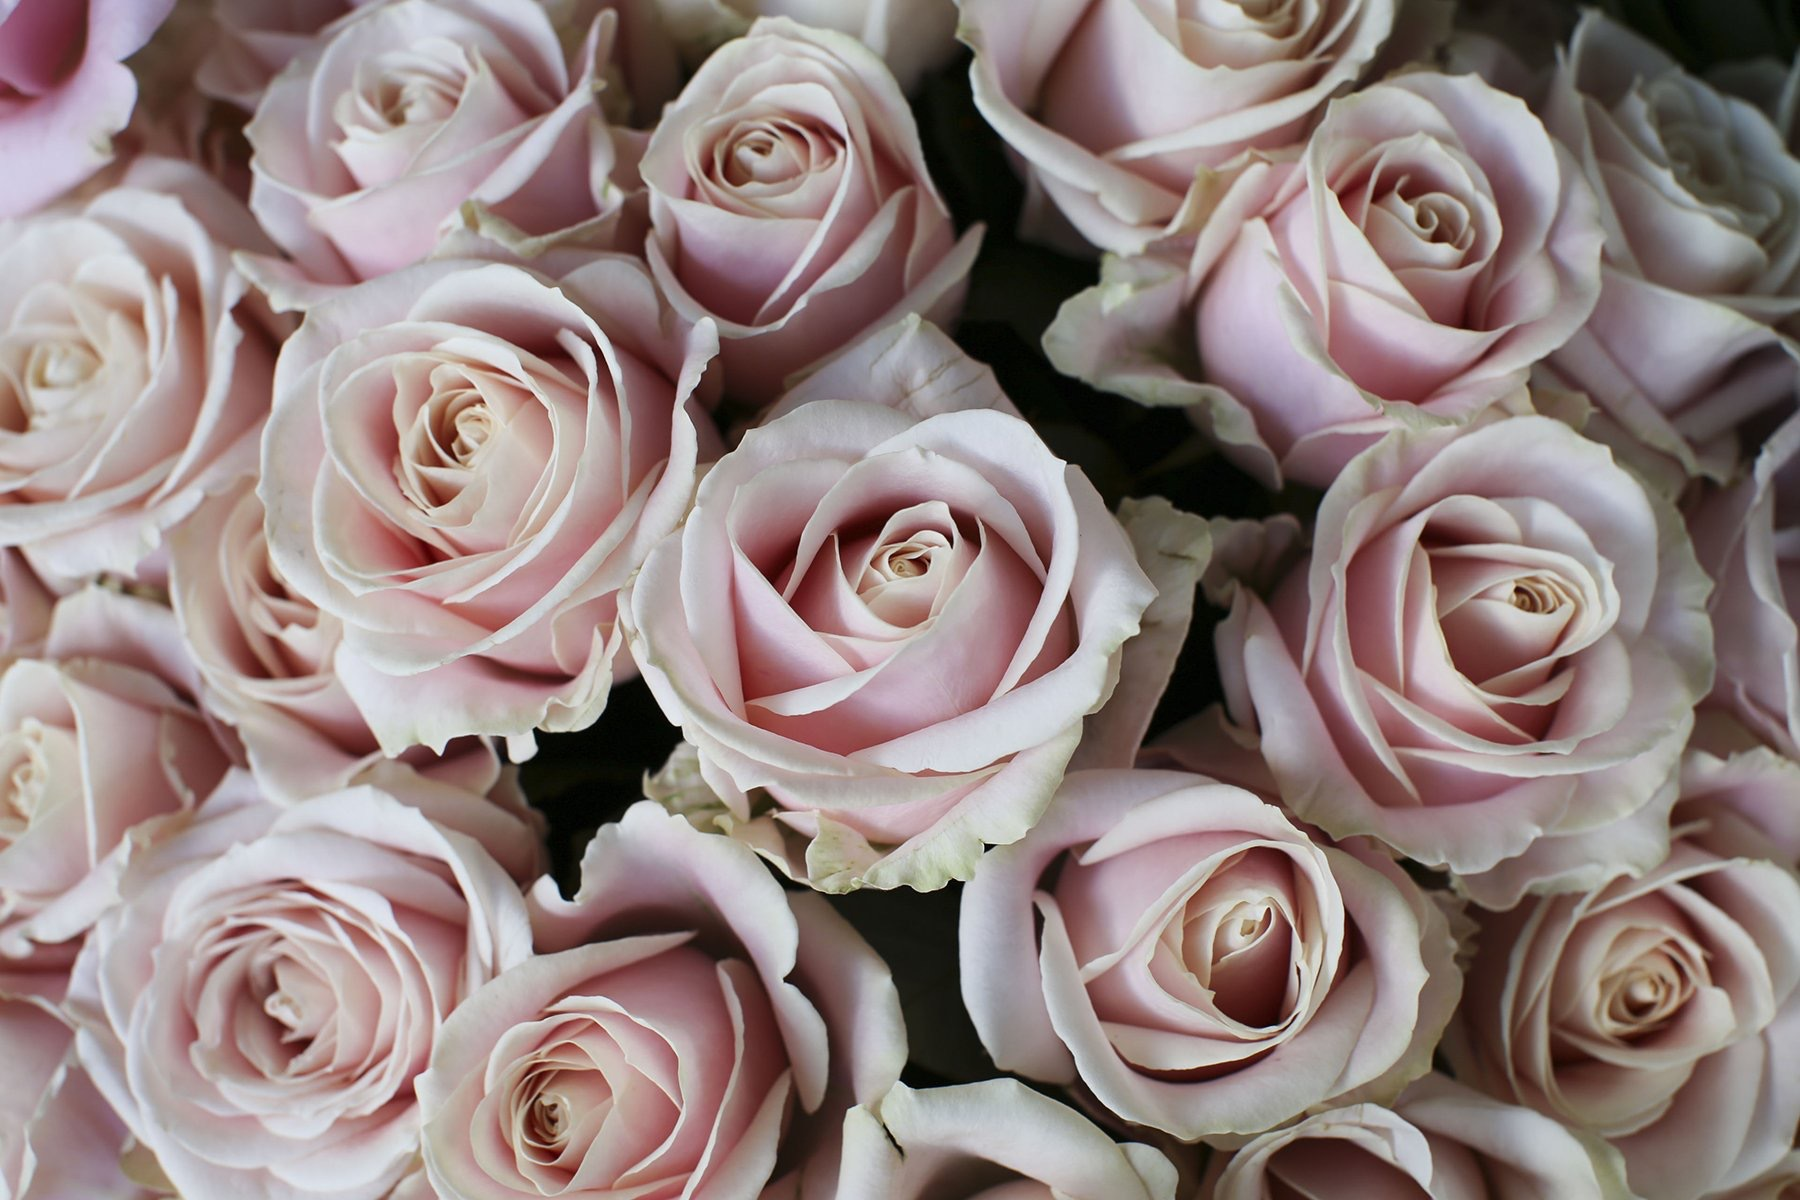 Sweet Avalanche soft pink luxury rose bouquet.